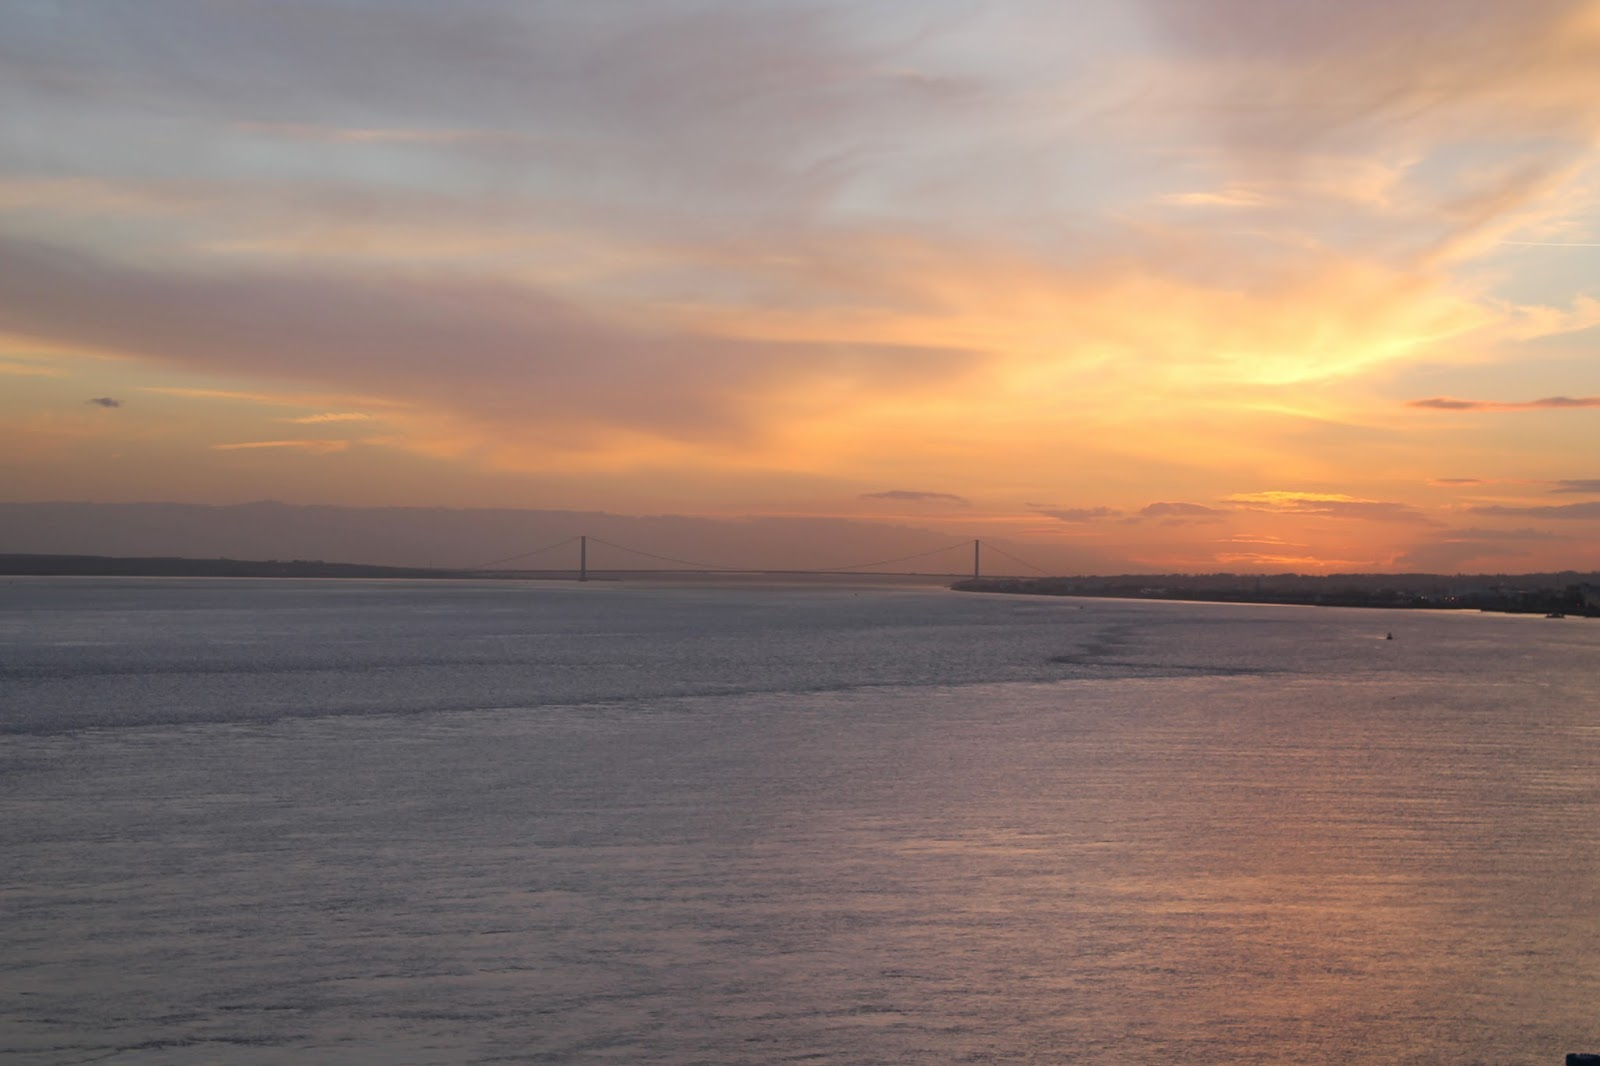 P&O Ferry to Amsterdam from Hull - Sunset over Humber Bridge